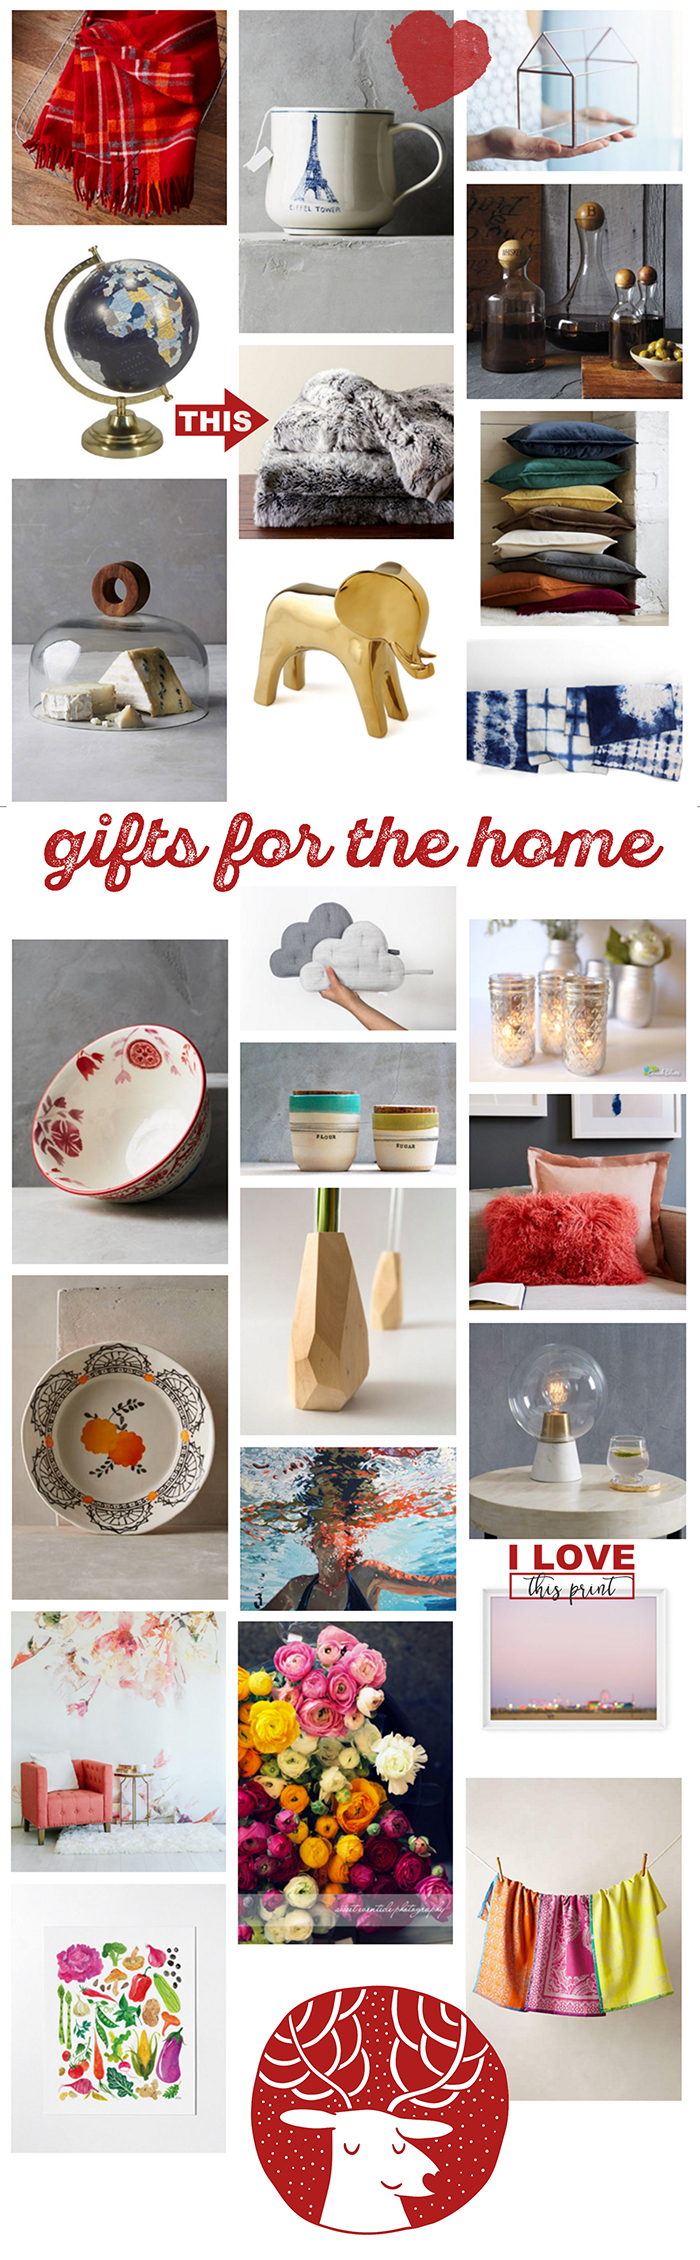 Lovely gifts for the home